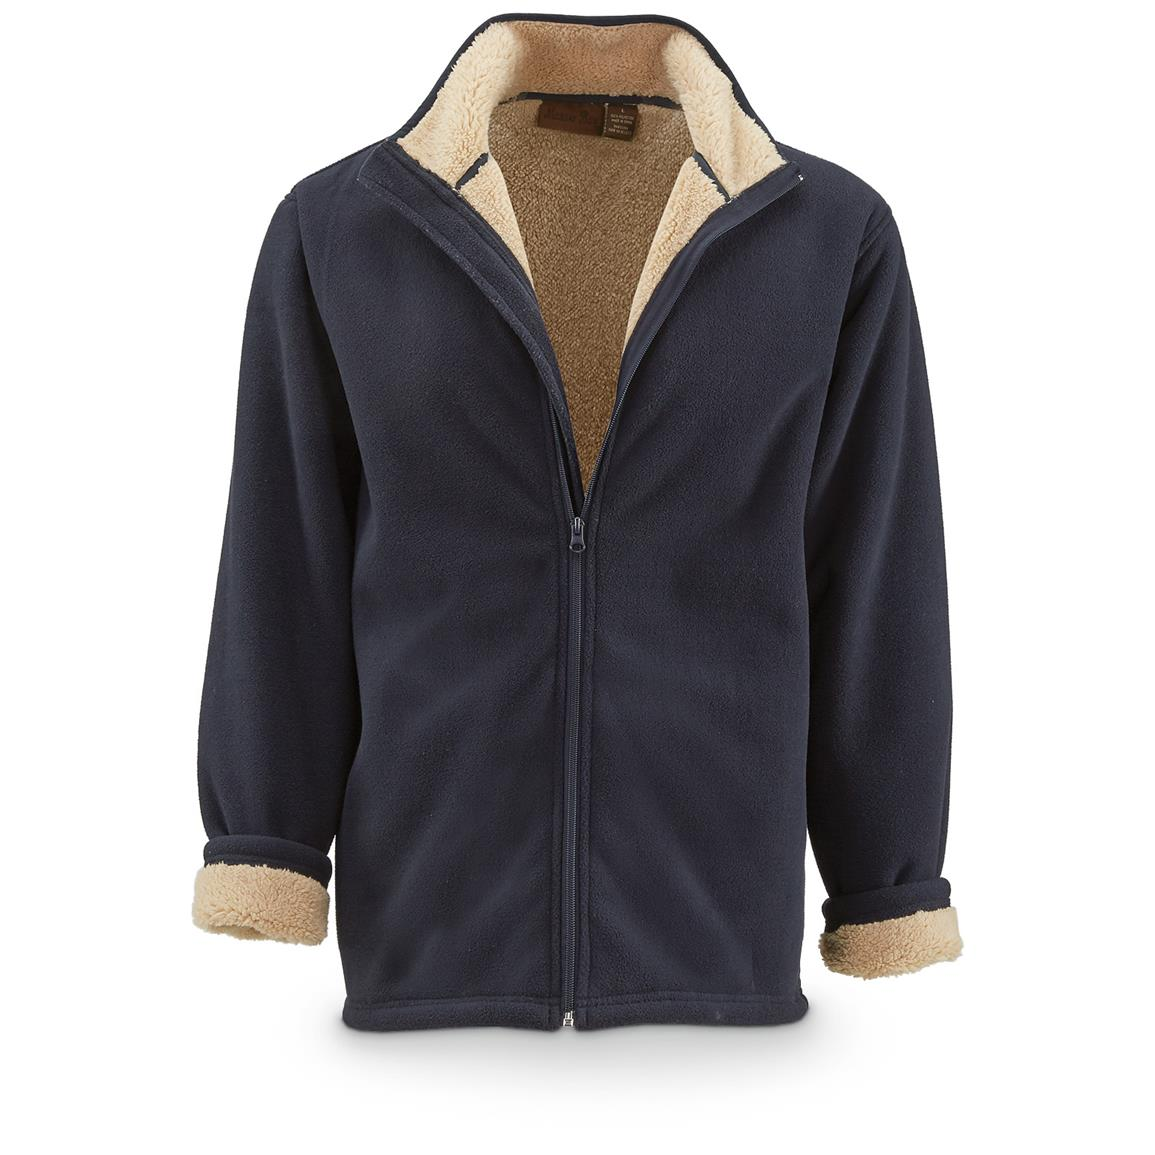 Marino Bay Men's Full Zip Fleece Jacket with Sherpa Lining, Navy